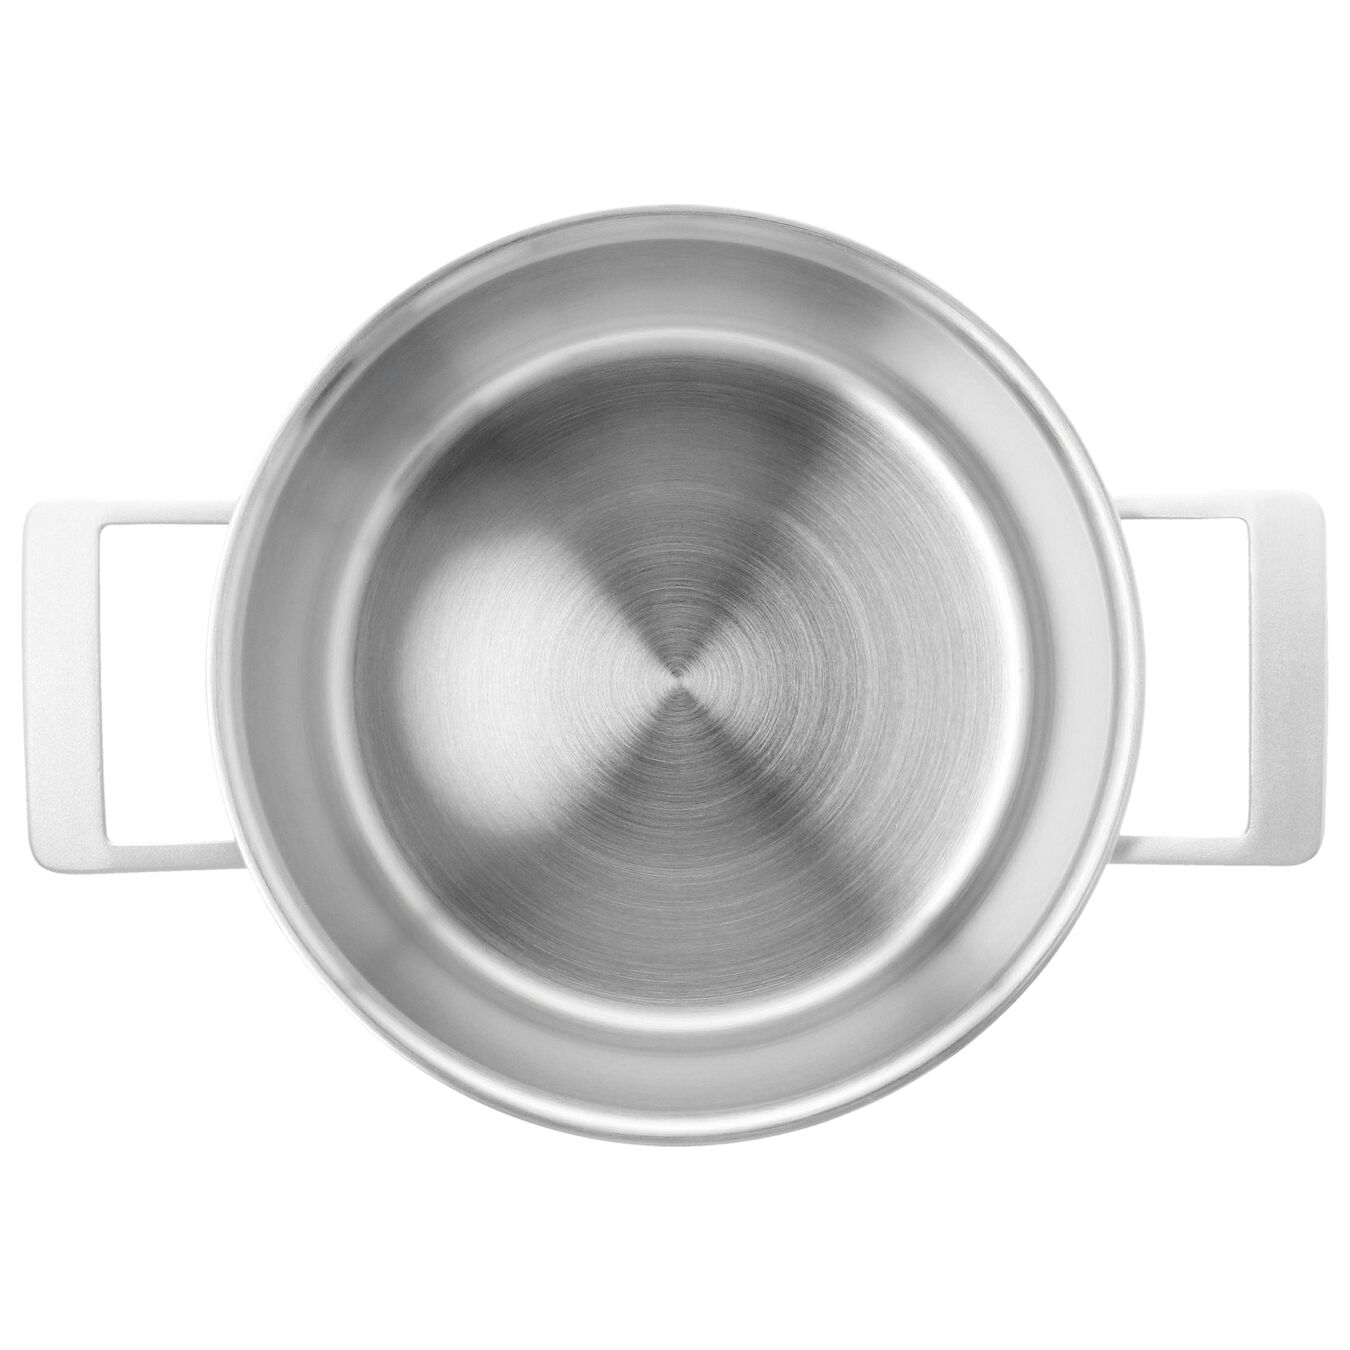 270.5-oz Stock pot with lid, 18/10 Stainless Steel ,,large 4